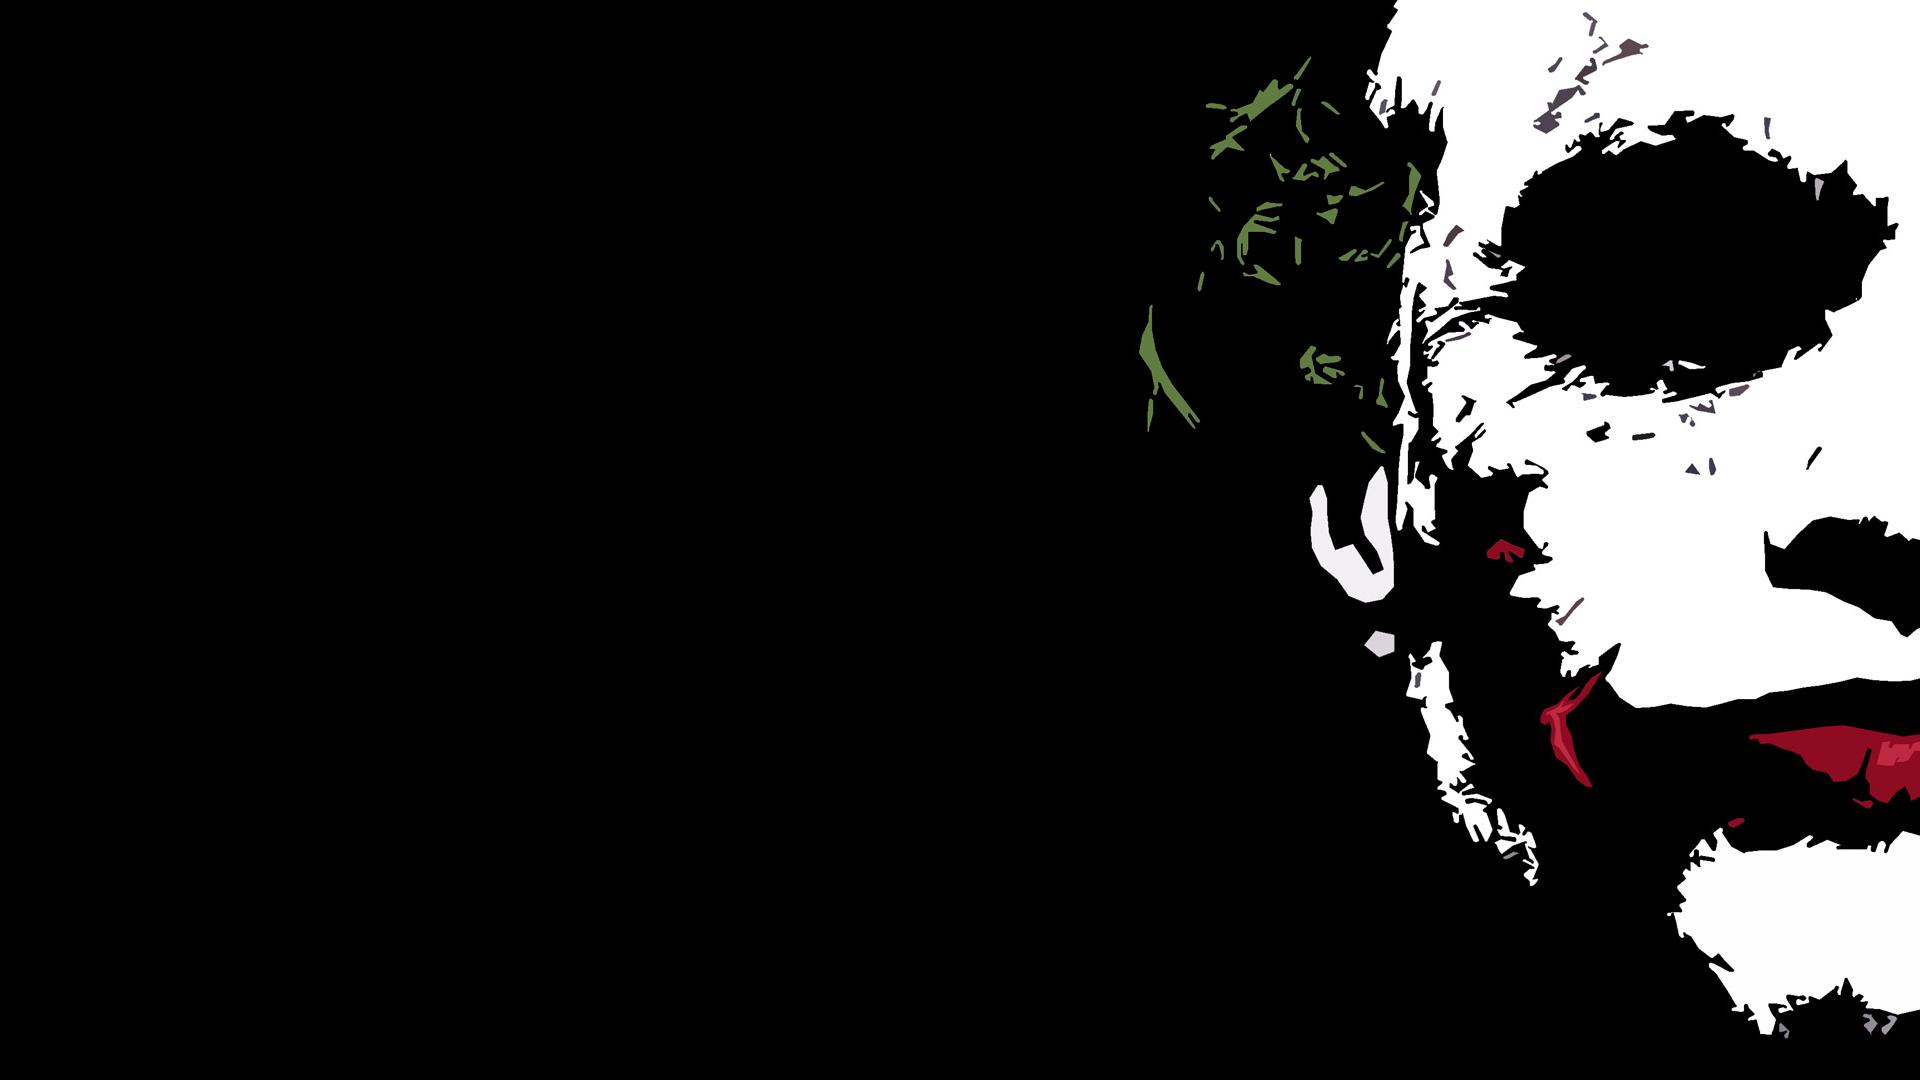 Joker Hd Wallpaper Background Image 1920x1080 Id 149515